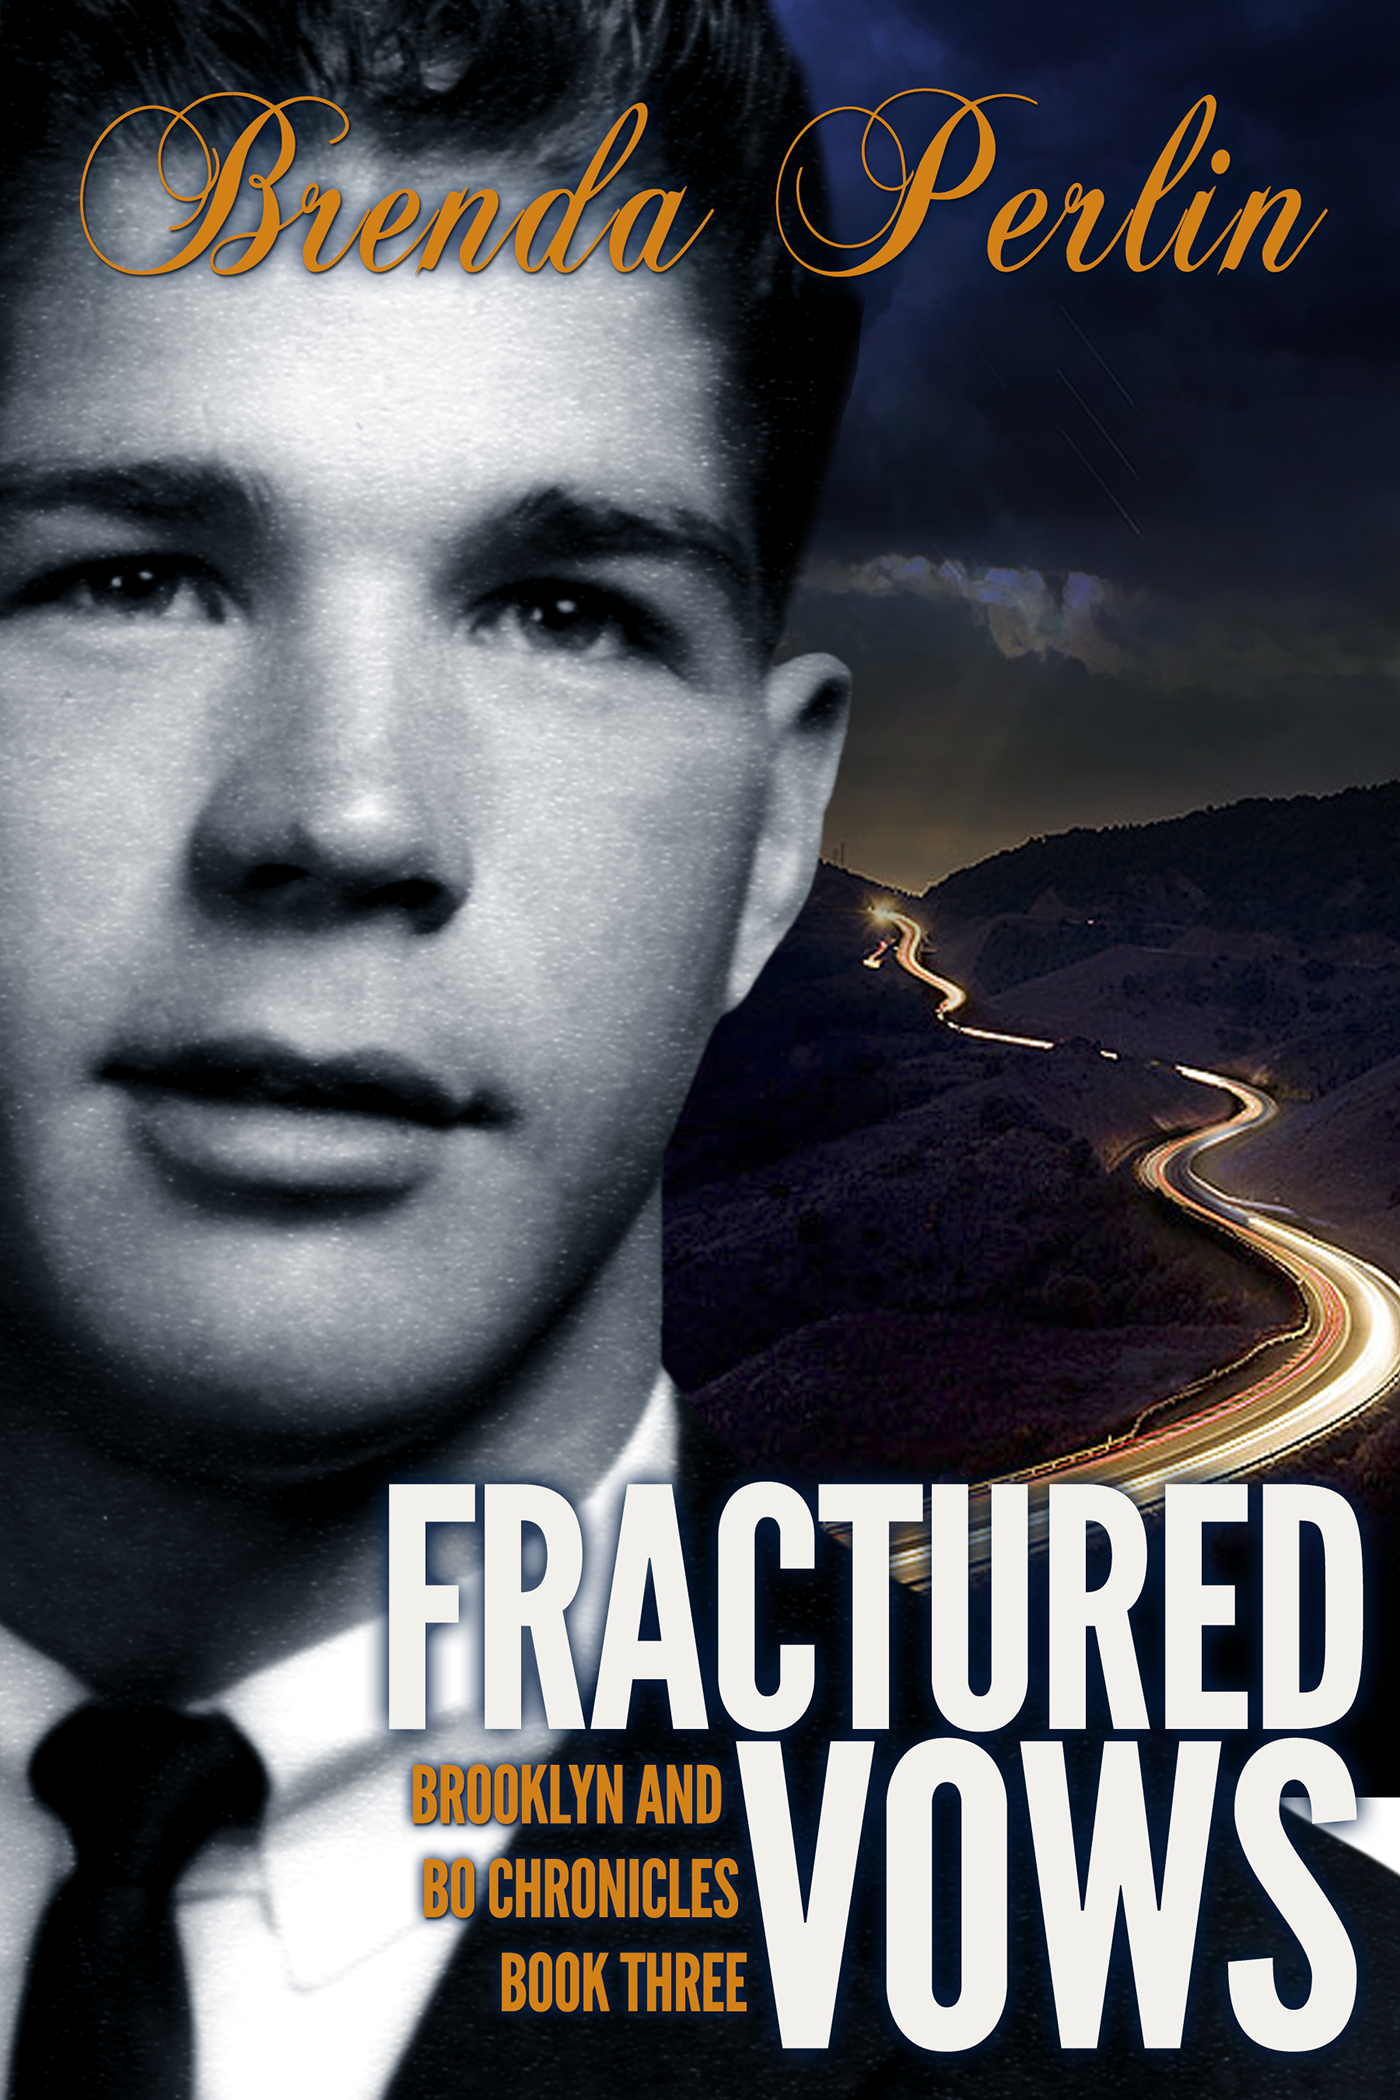 Fractured Vows (Brooklyn and Bo Chronicles: Book Three)